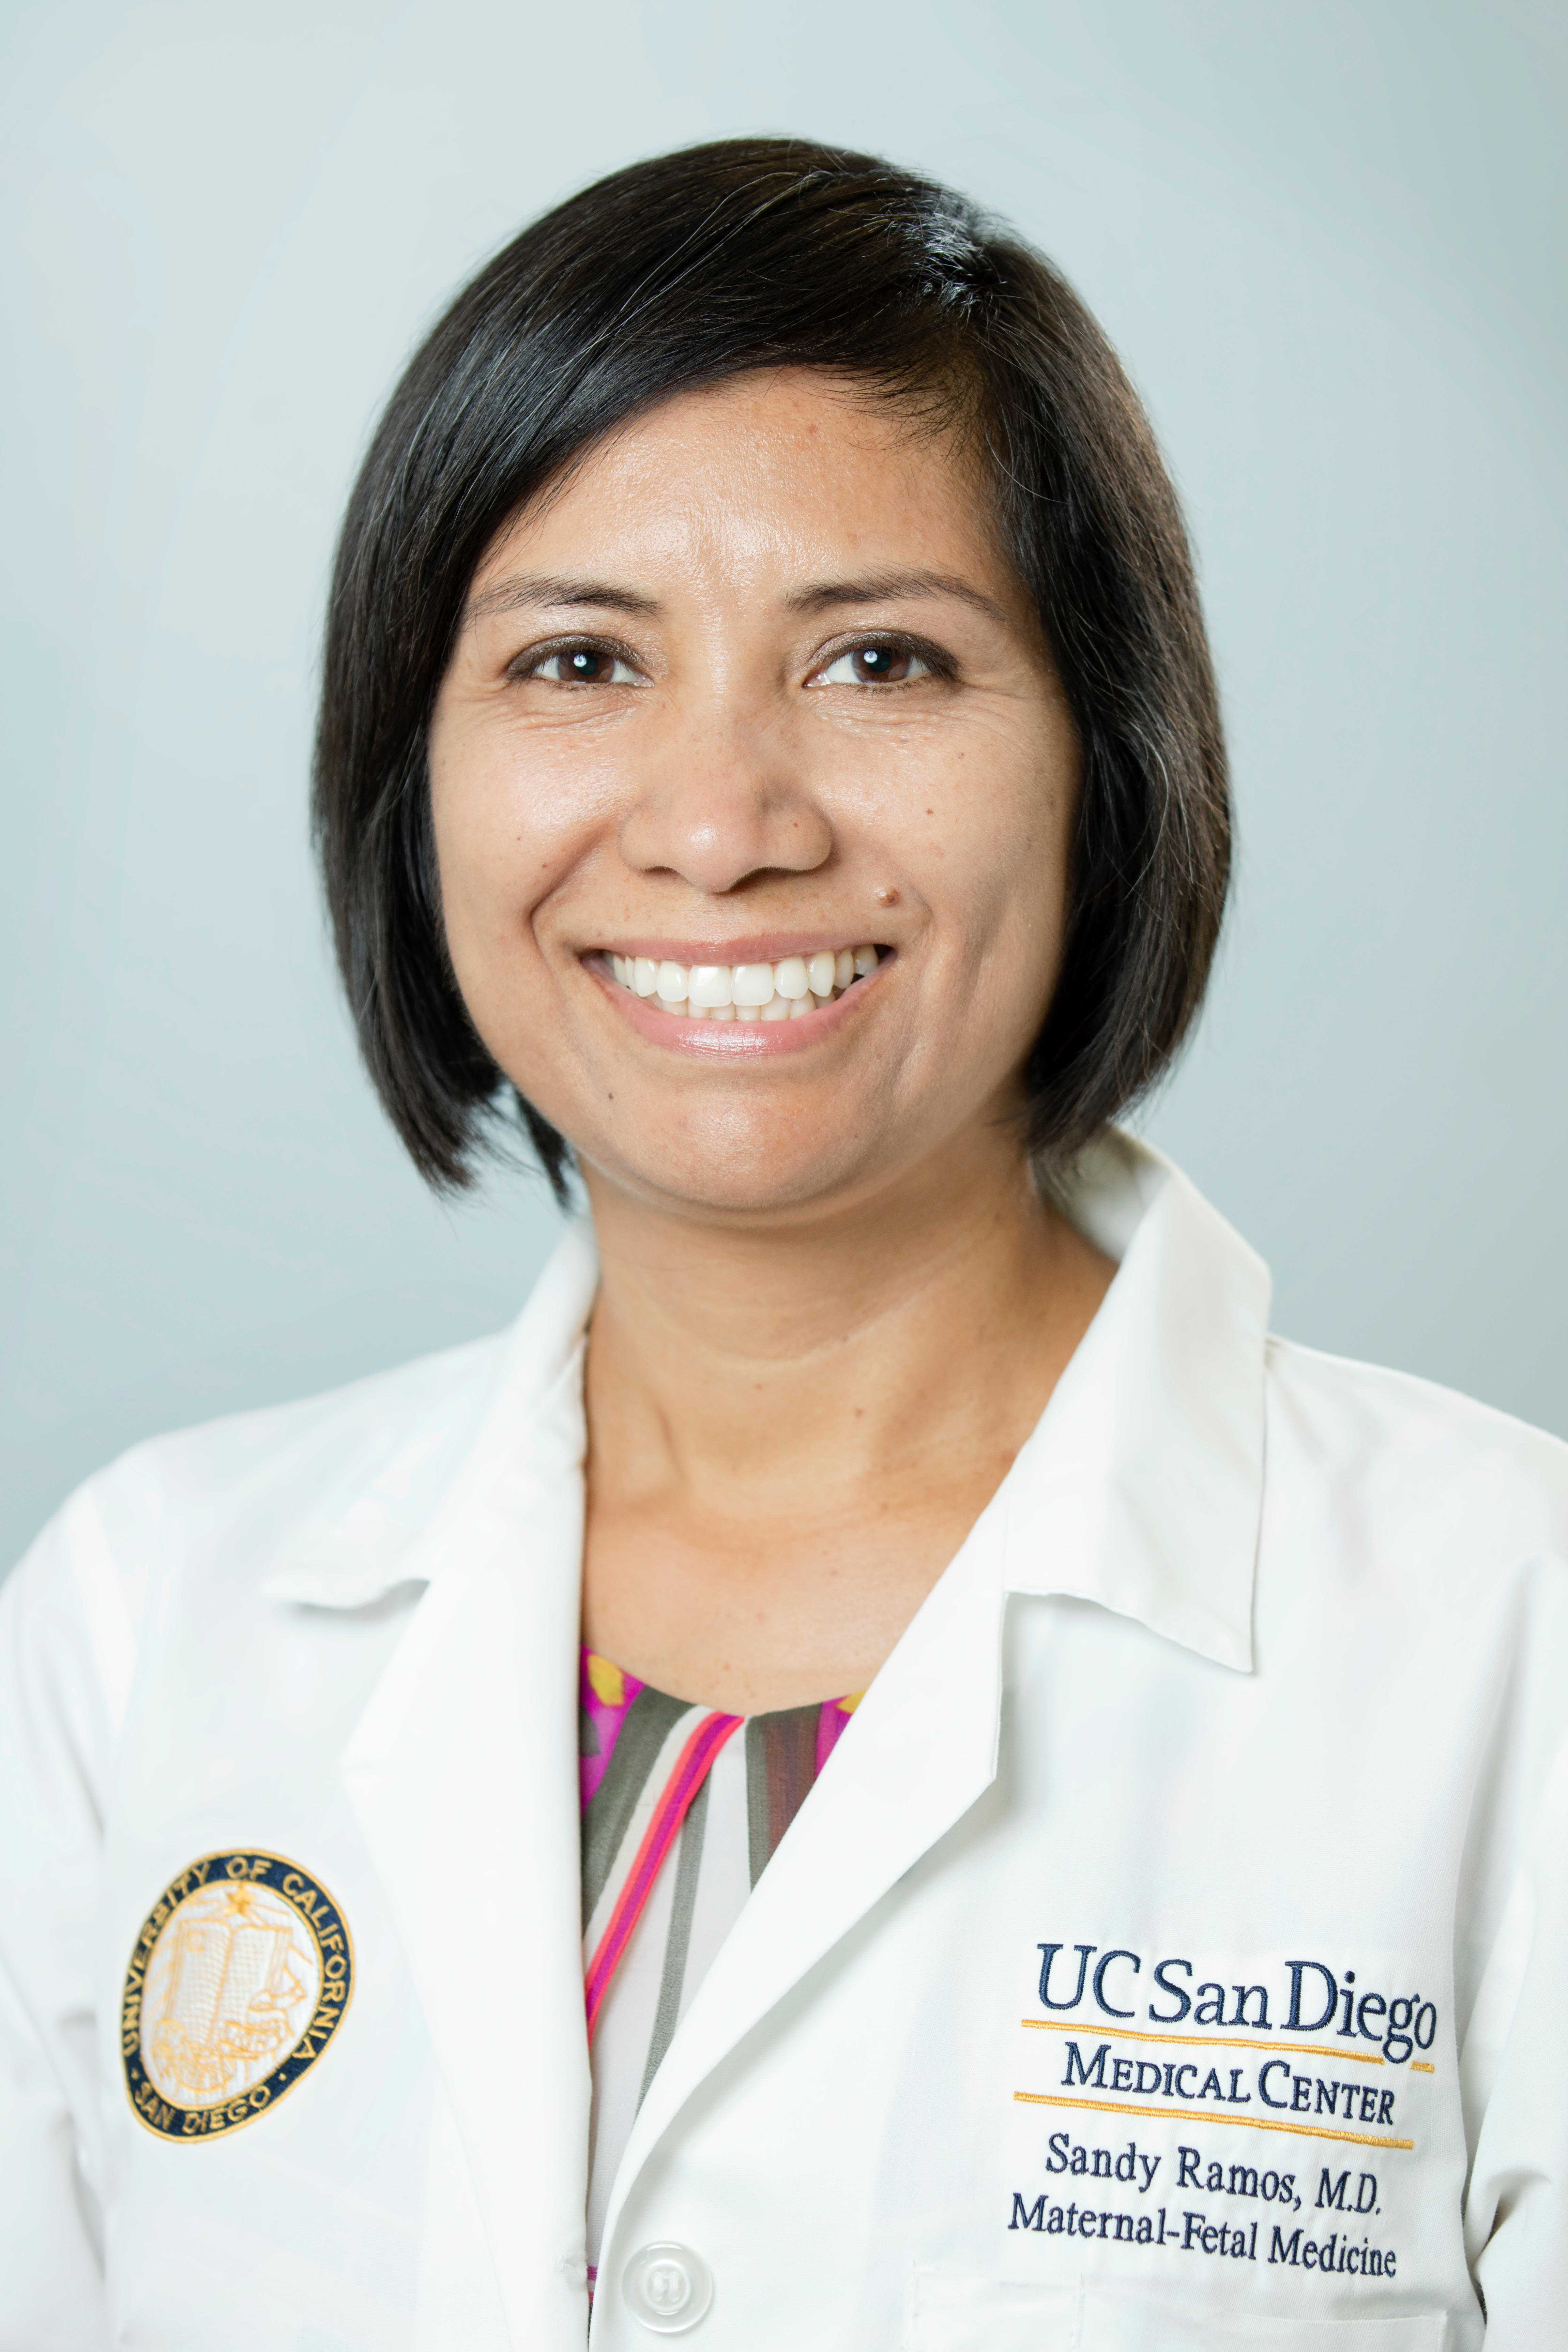 Gladys 'sandy' Ramos, MD Obstetrics & Gynecology